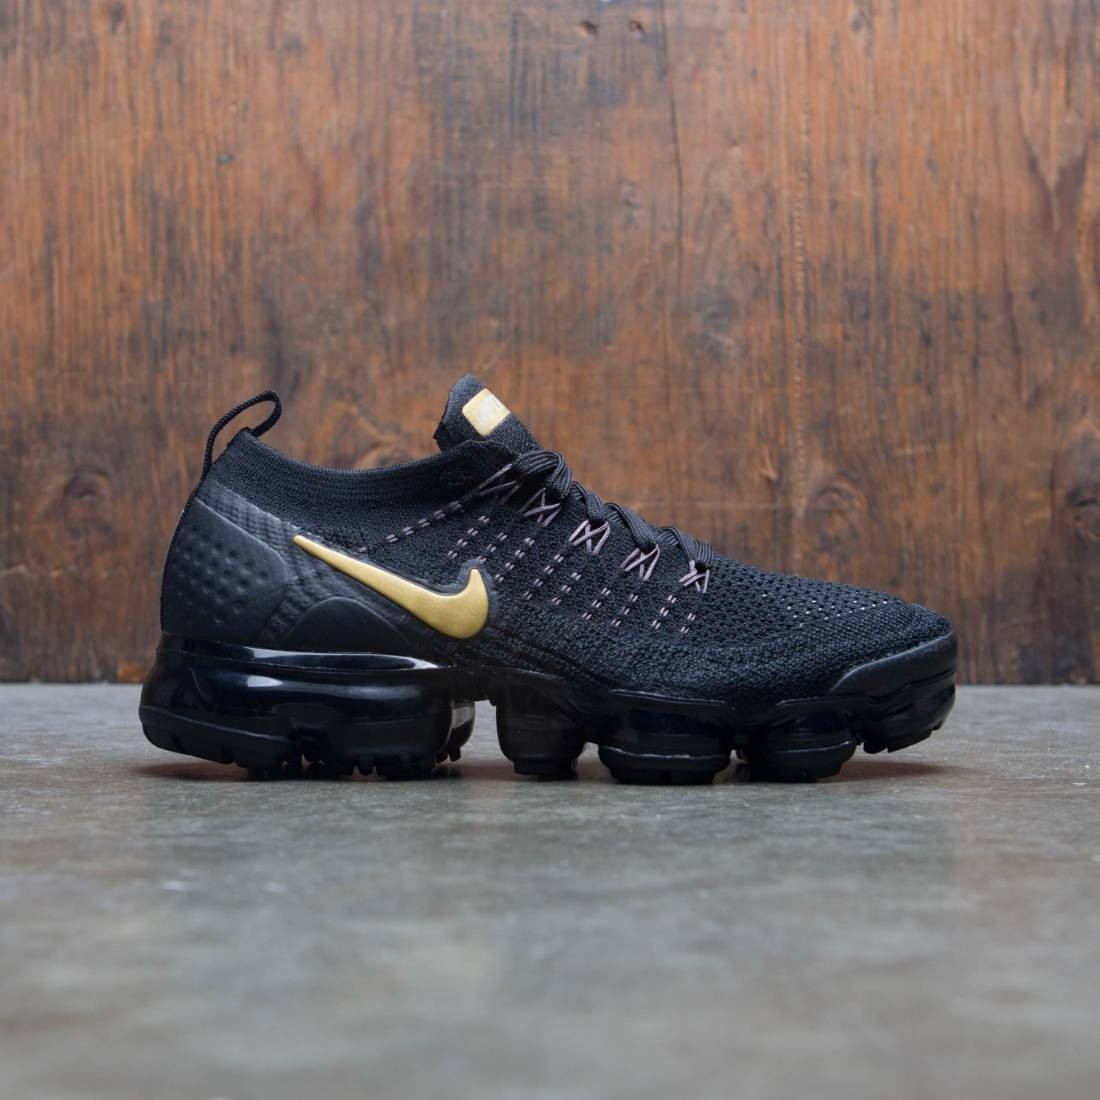 new concept 98886 4e989 Nike Women Air Vapormax Flyknit 2 (black / metallic gold-mtlc platinum)